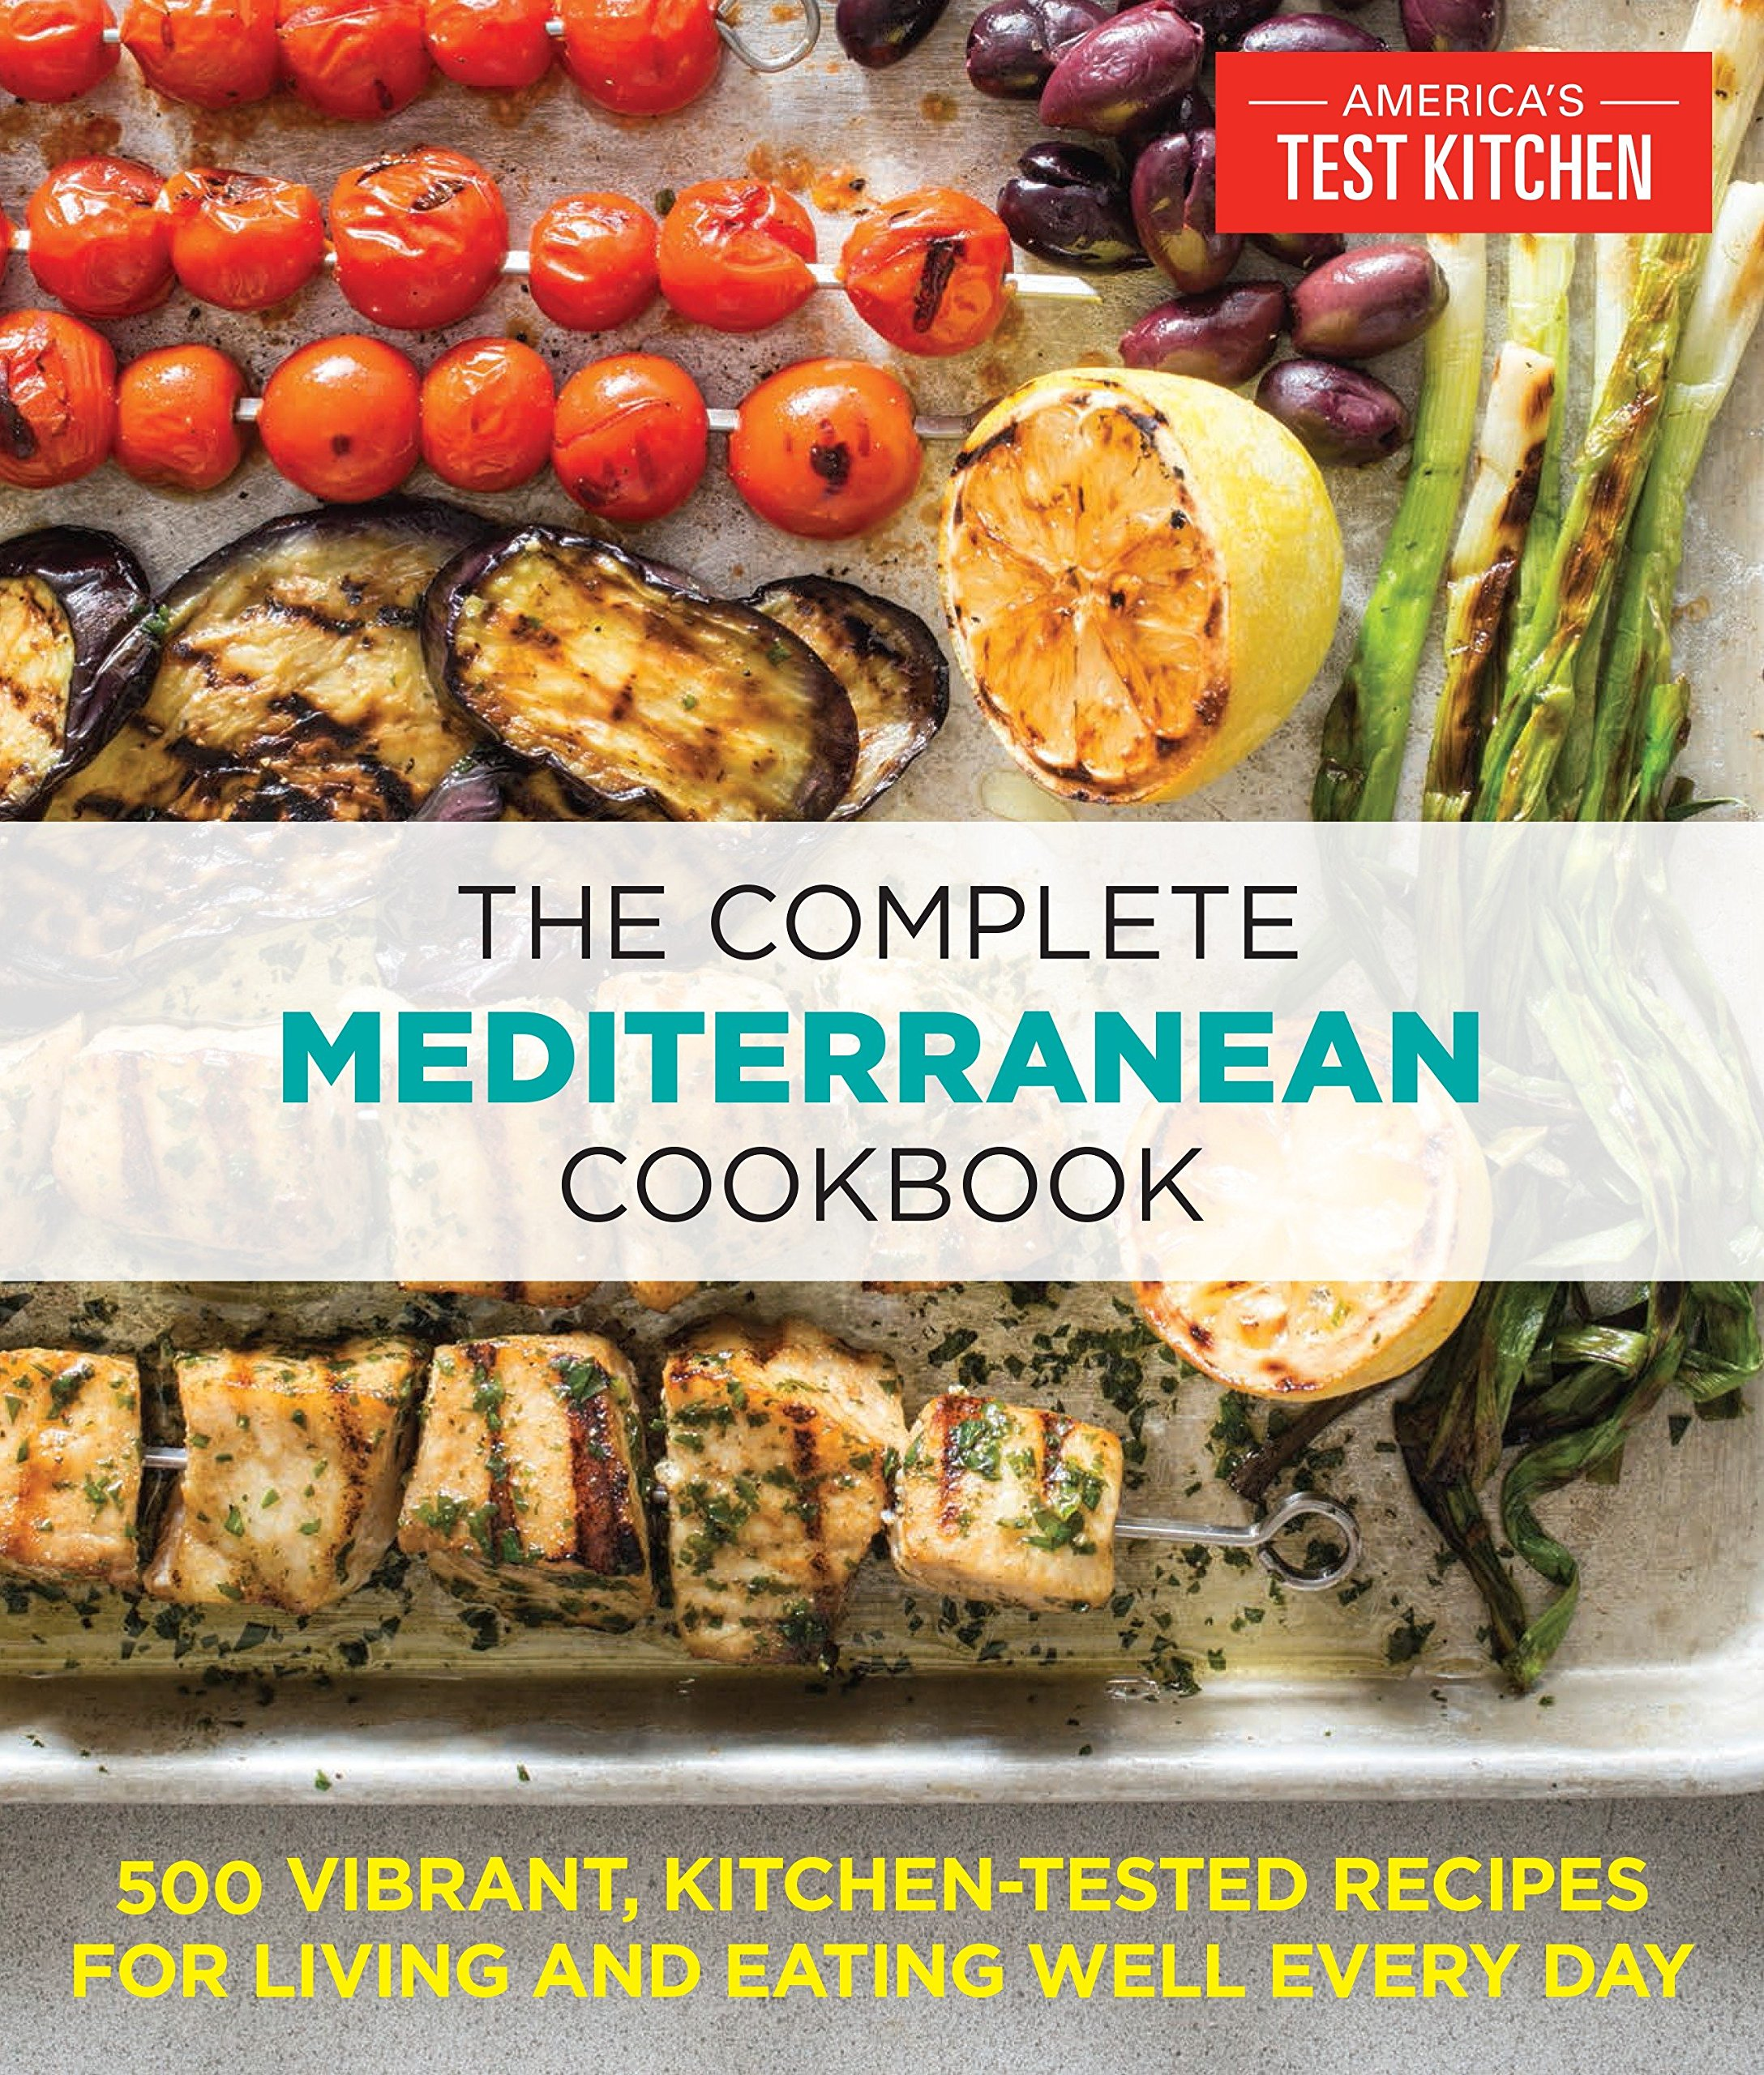 The Complete Mediterranean Cookbook: 500 Vibrant, Kitchen-Tested Recipes for Living and Eating Well Every Day by America s Test Kitchen